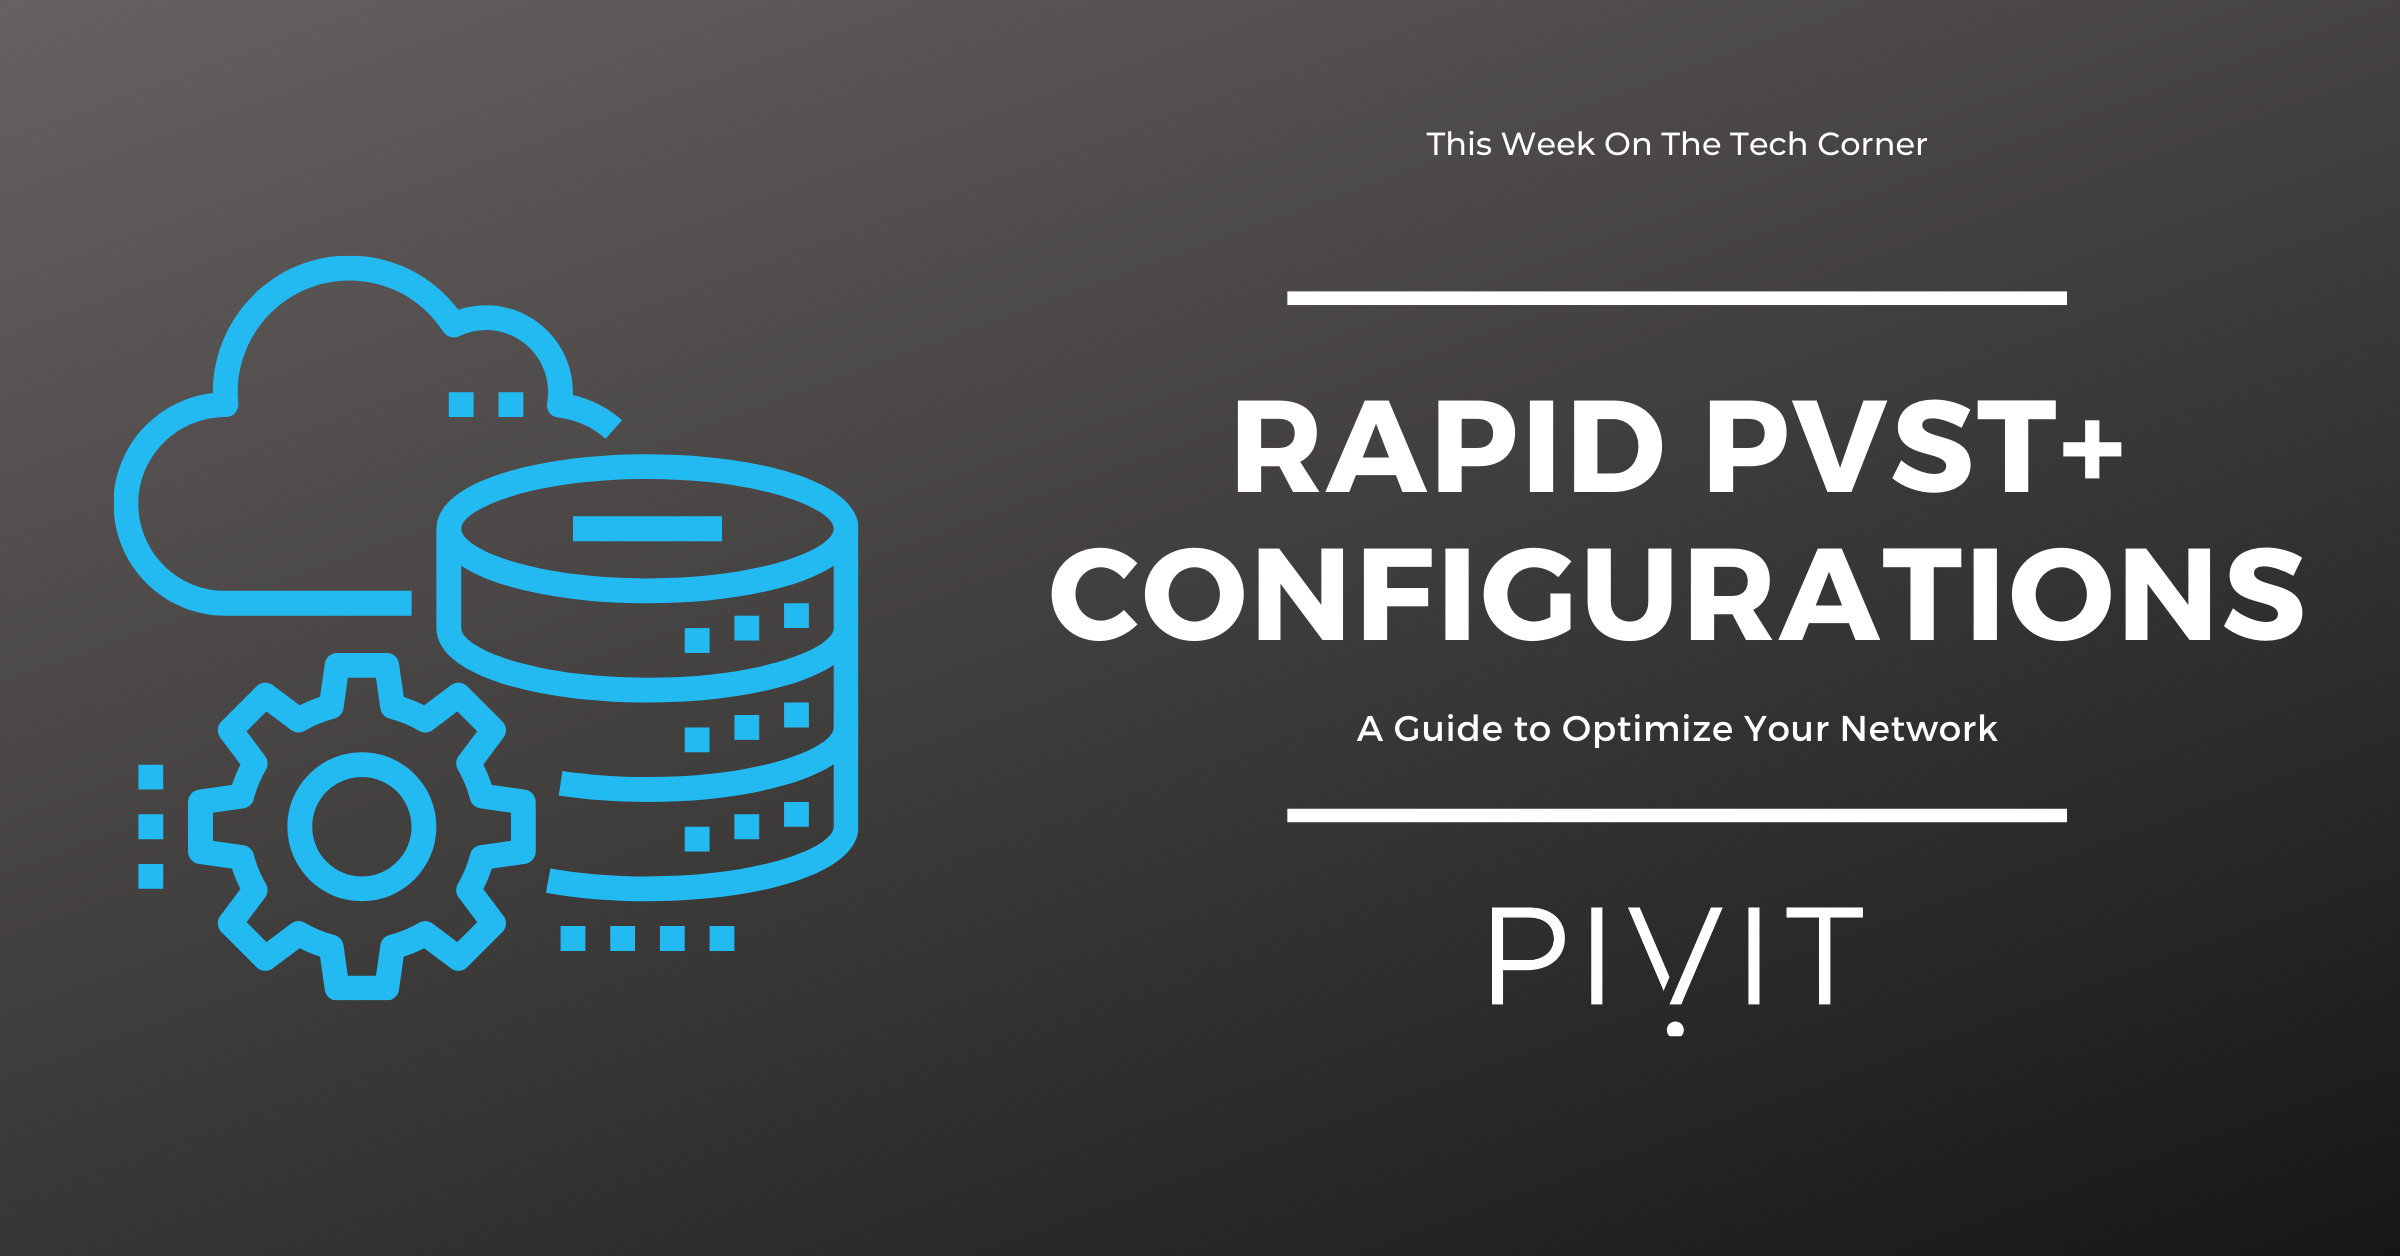 A Guide to Optimize Network Performance by Configuring Rapid PVST+